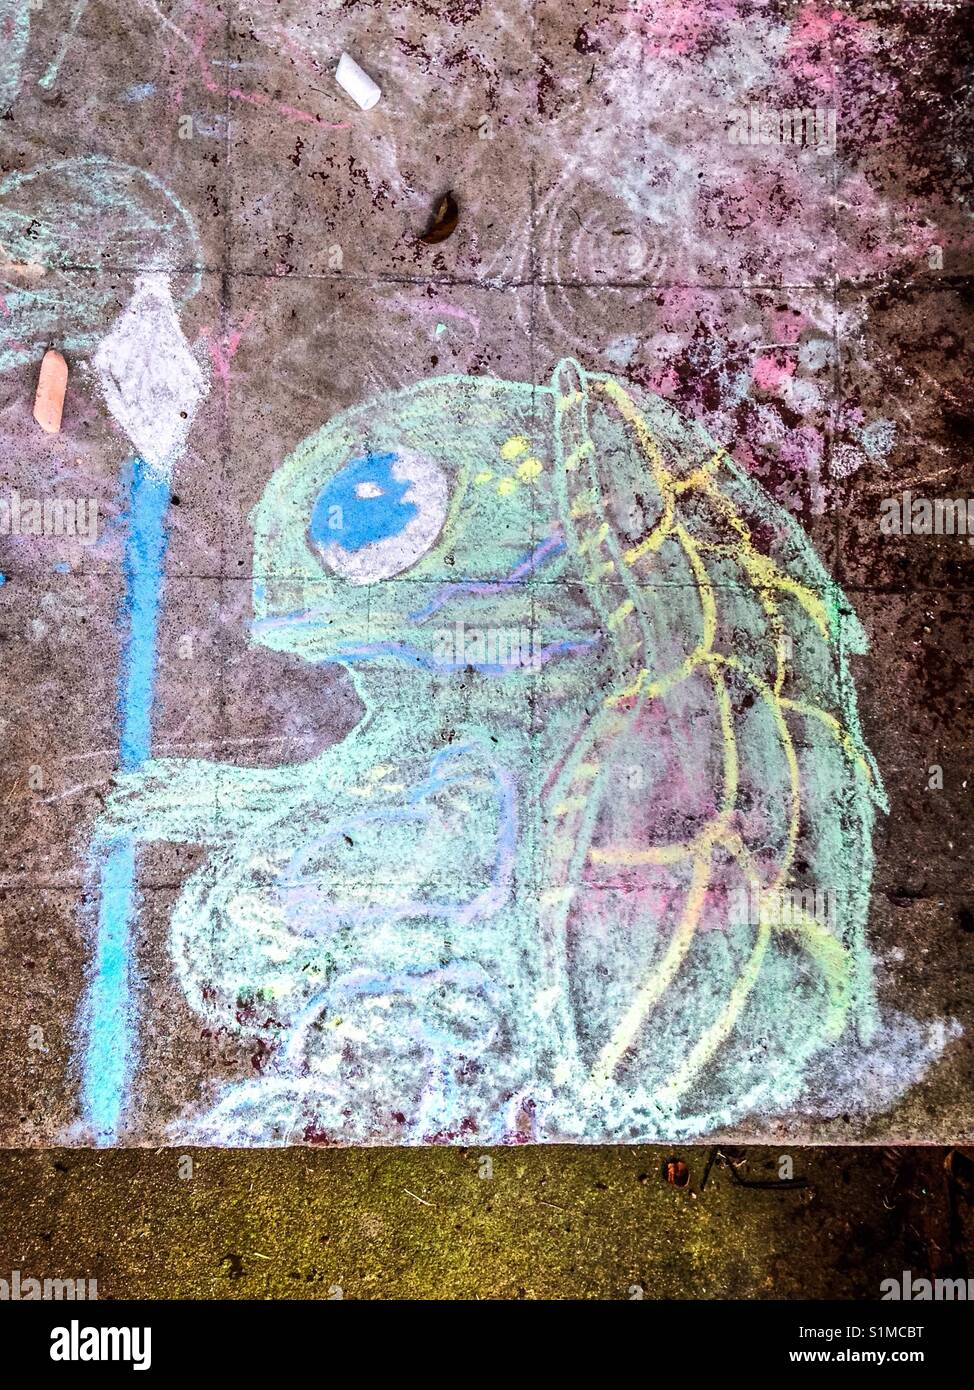 Chalk drawing of turtle king, maybe - Stock Image